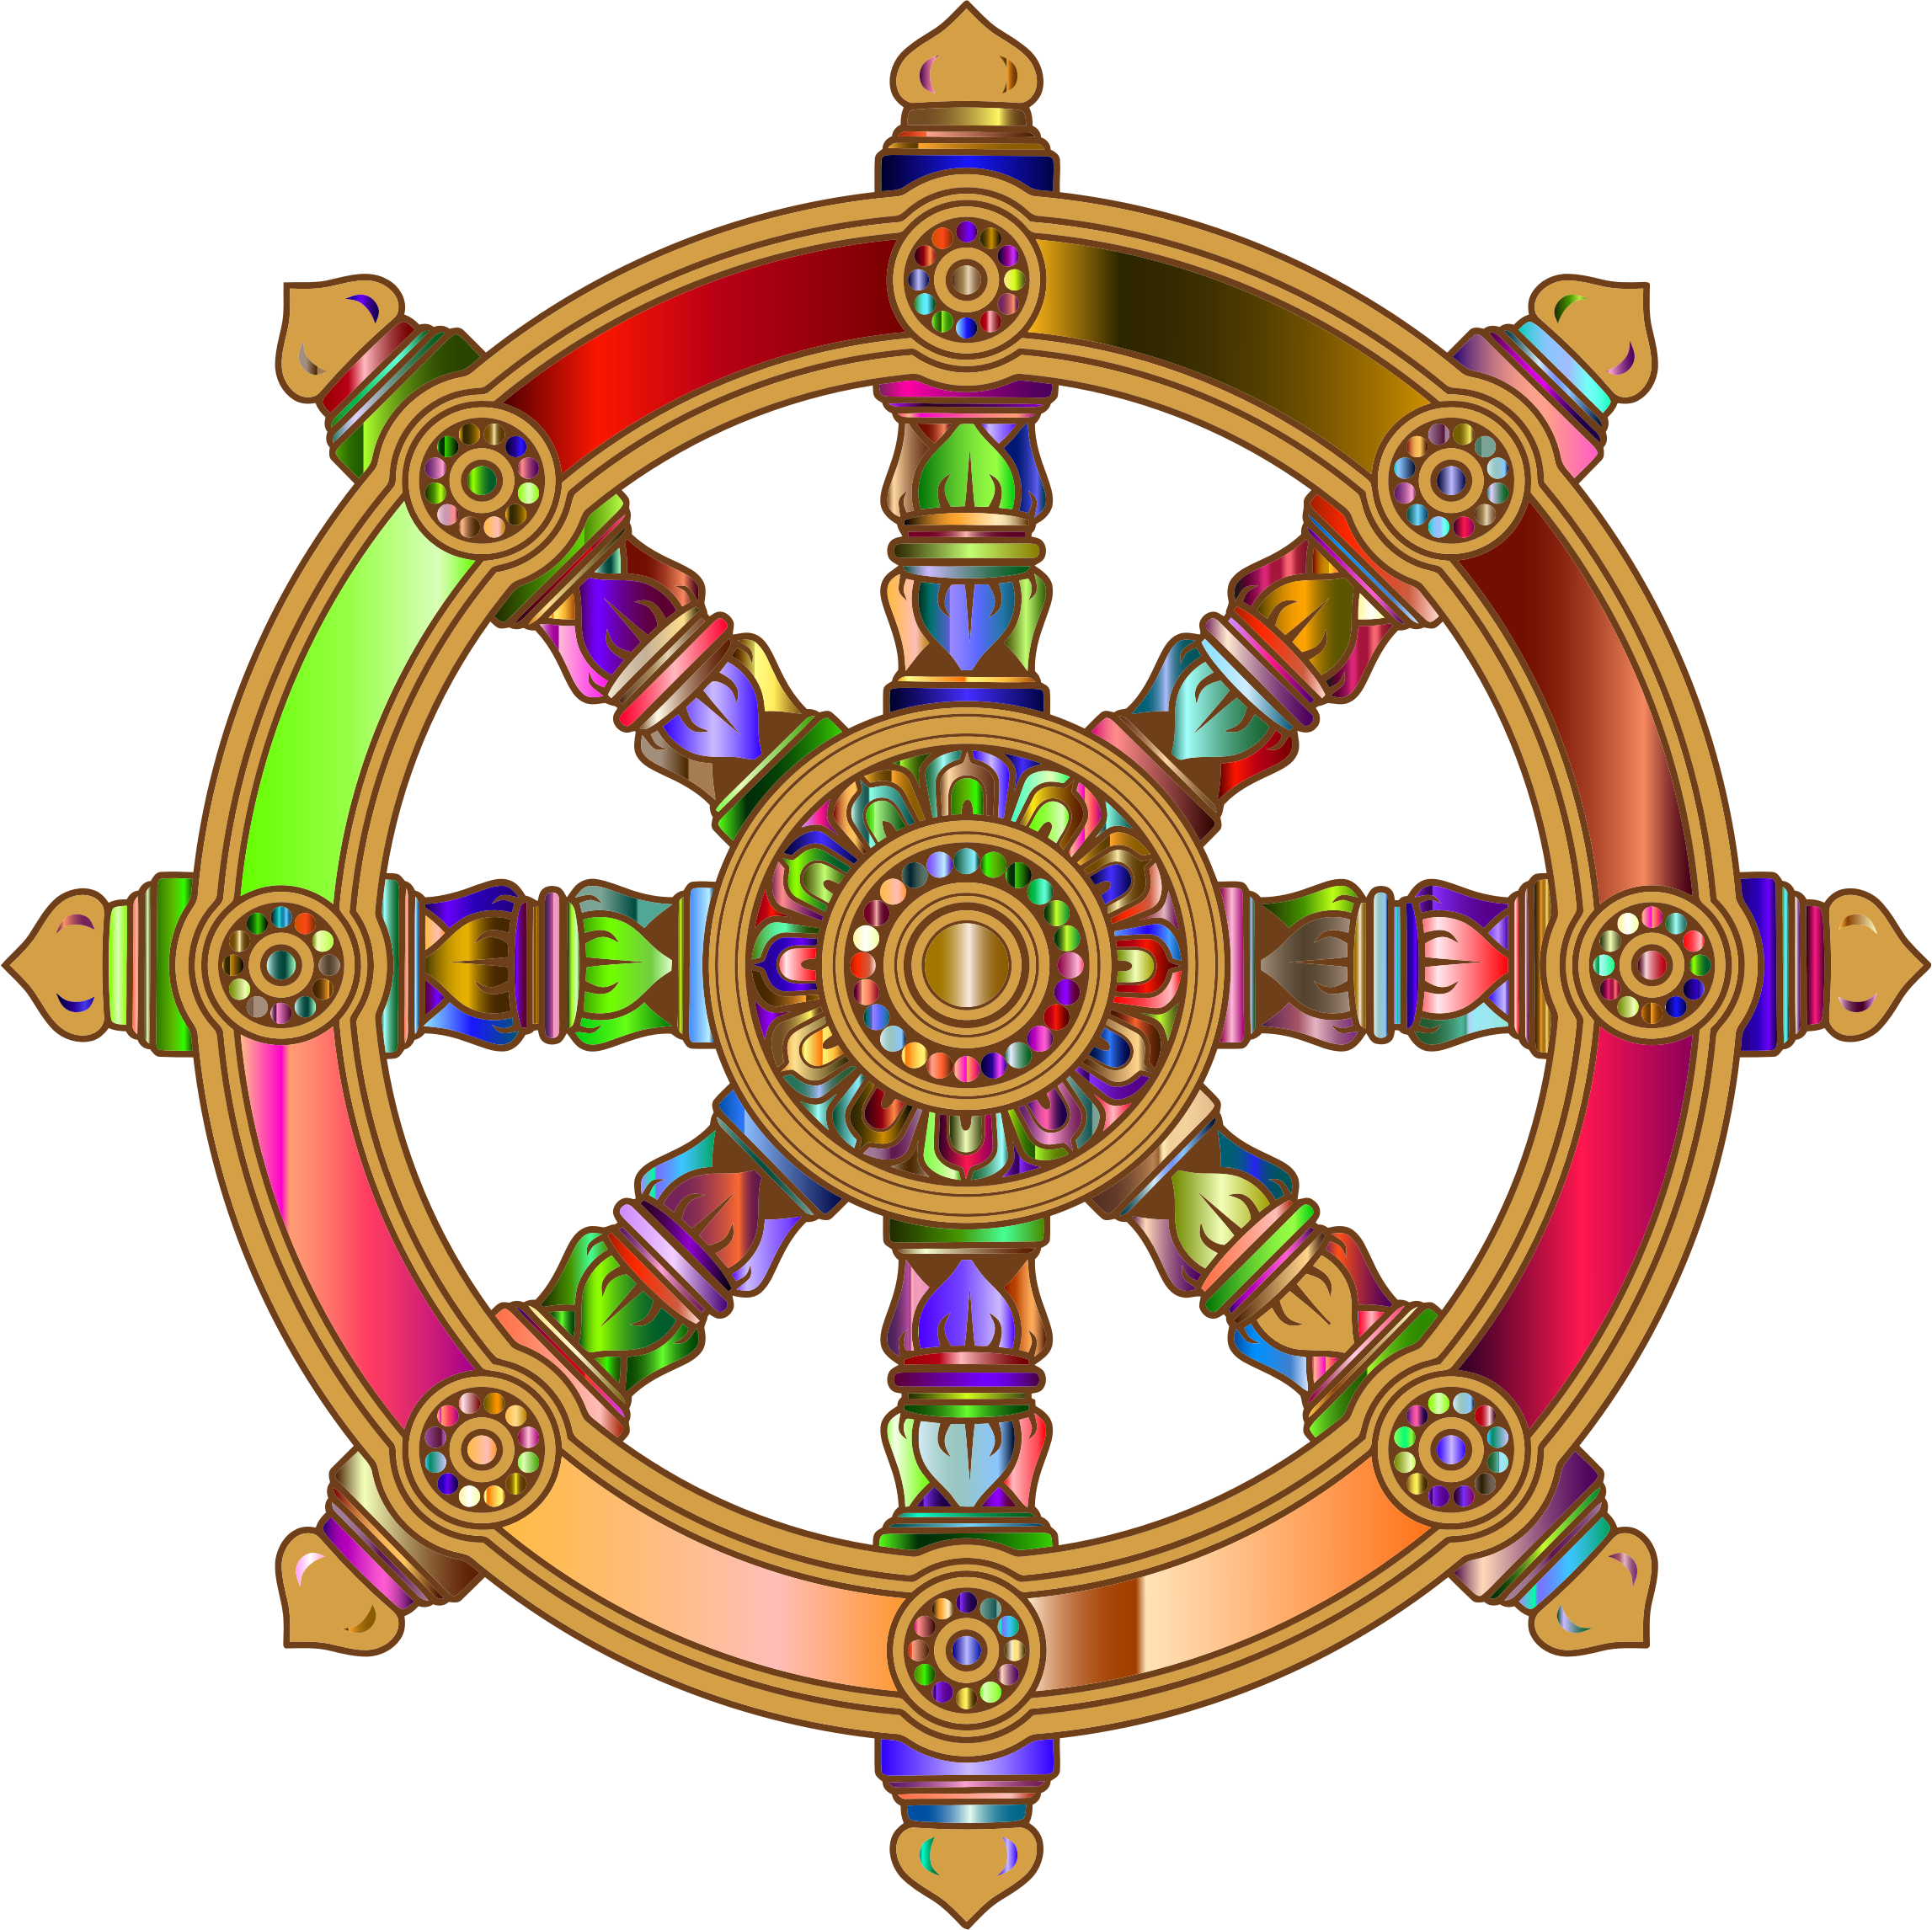 Prismatic Ornate Dharma Wheel by GDJ